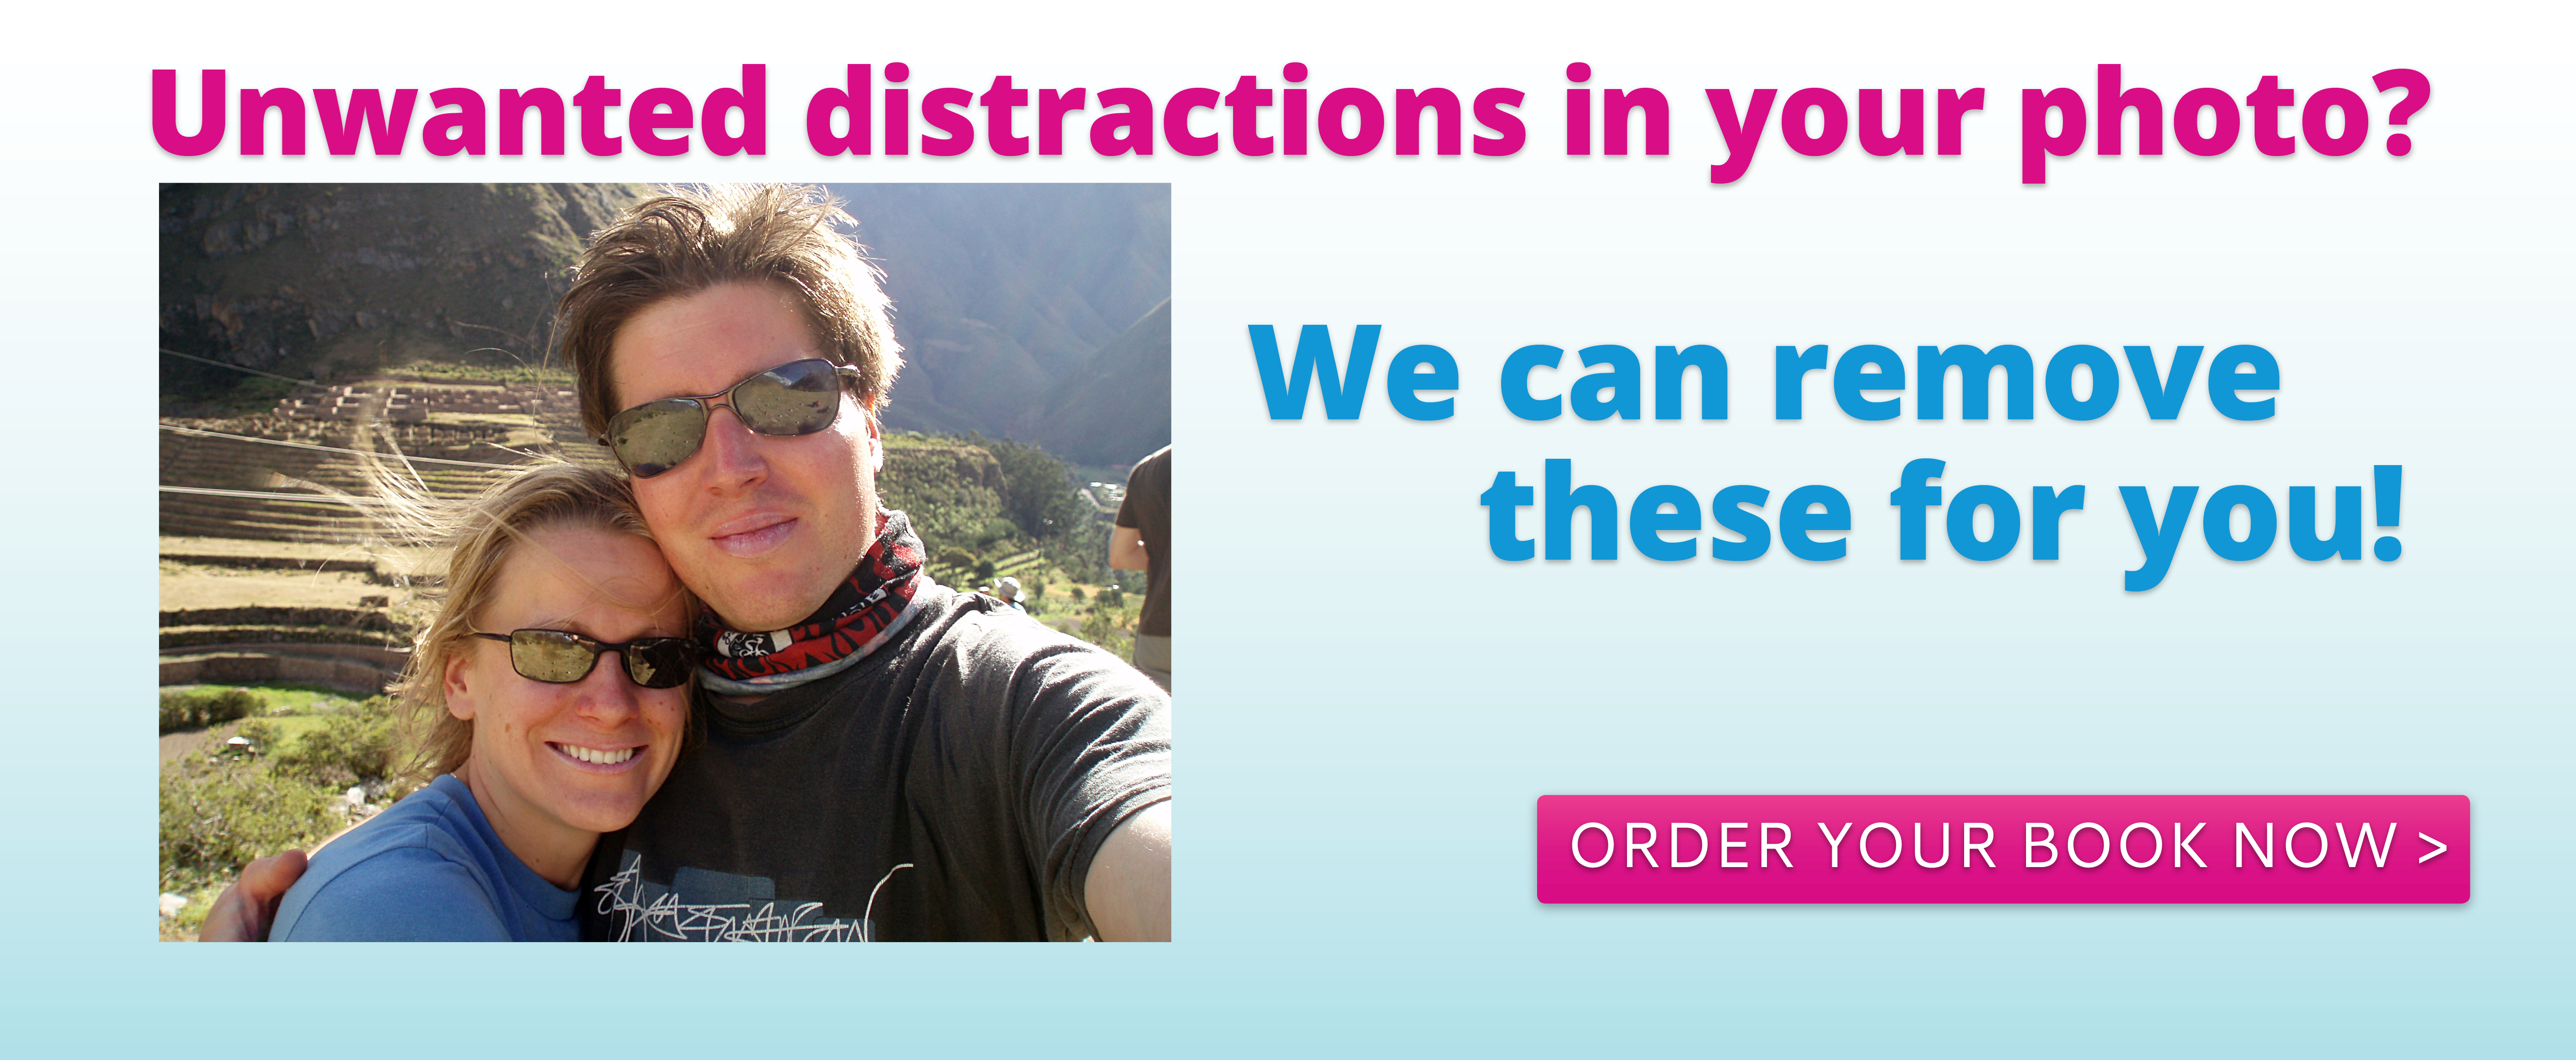 Unwanted distractions in your photo?